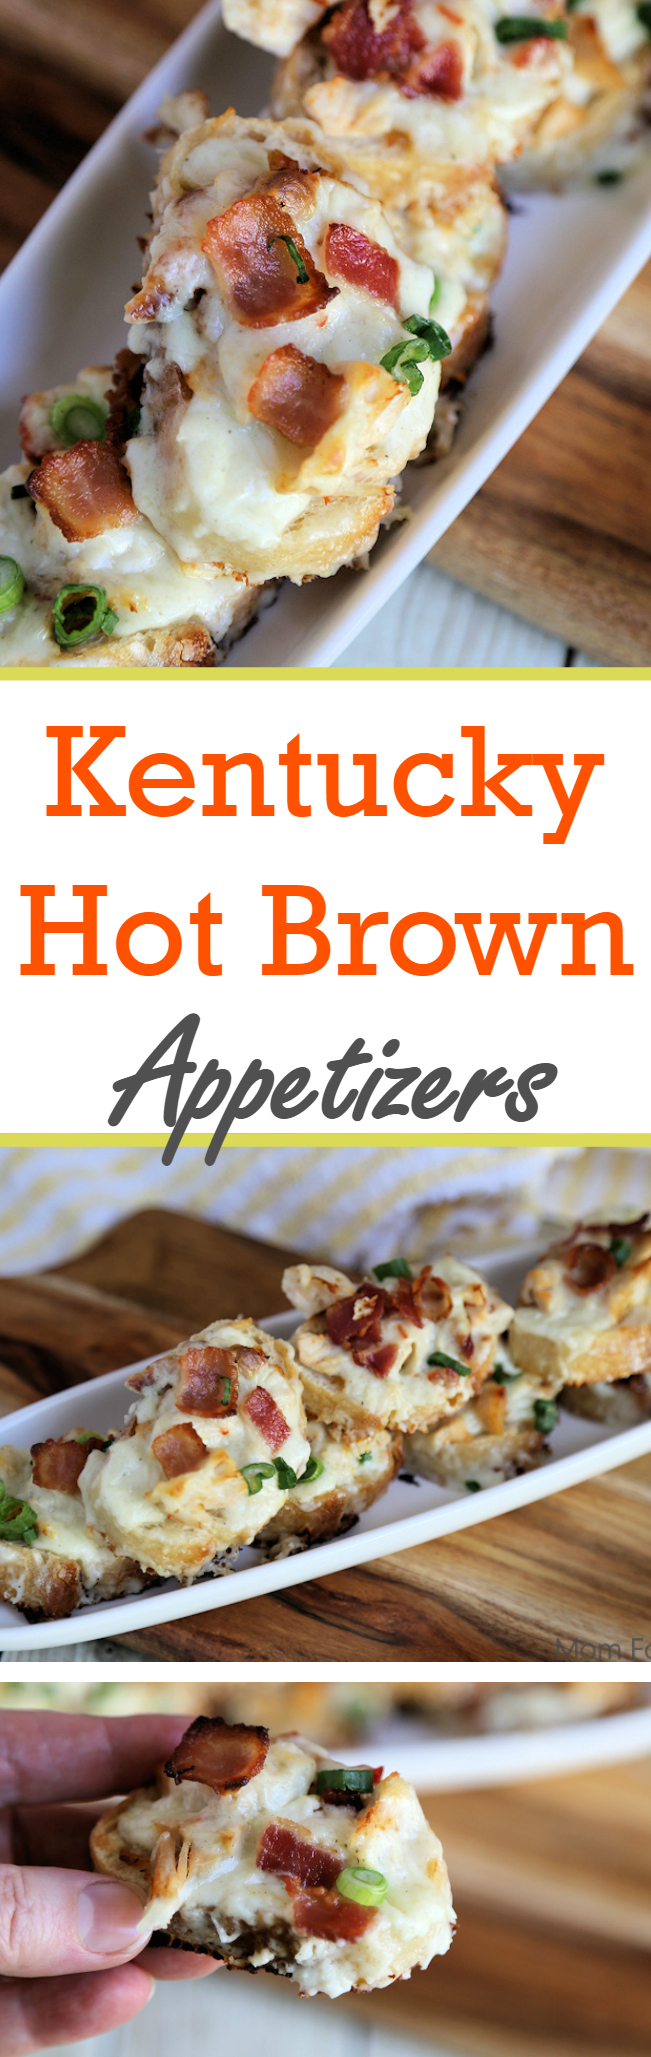 Kentucky Hot Brown appetizer recipe - Great hot appetiser for parties. #kentuckyhotbrown #appetizers #derby #hot appetizers